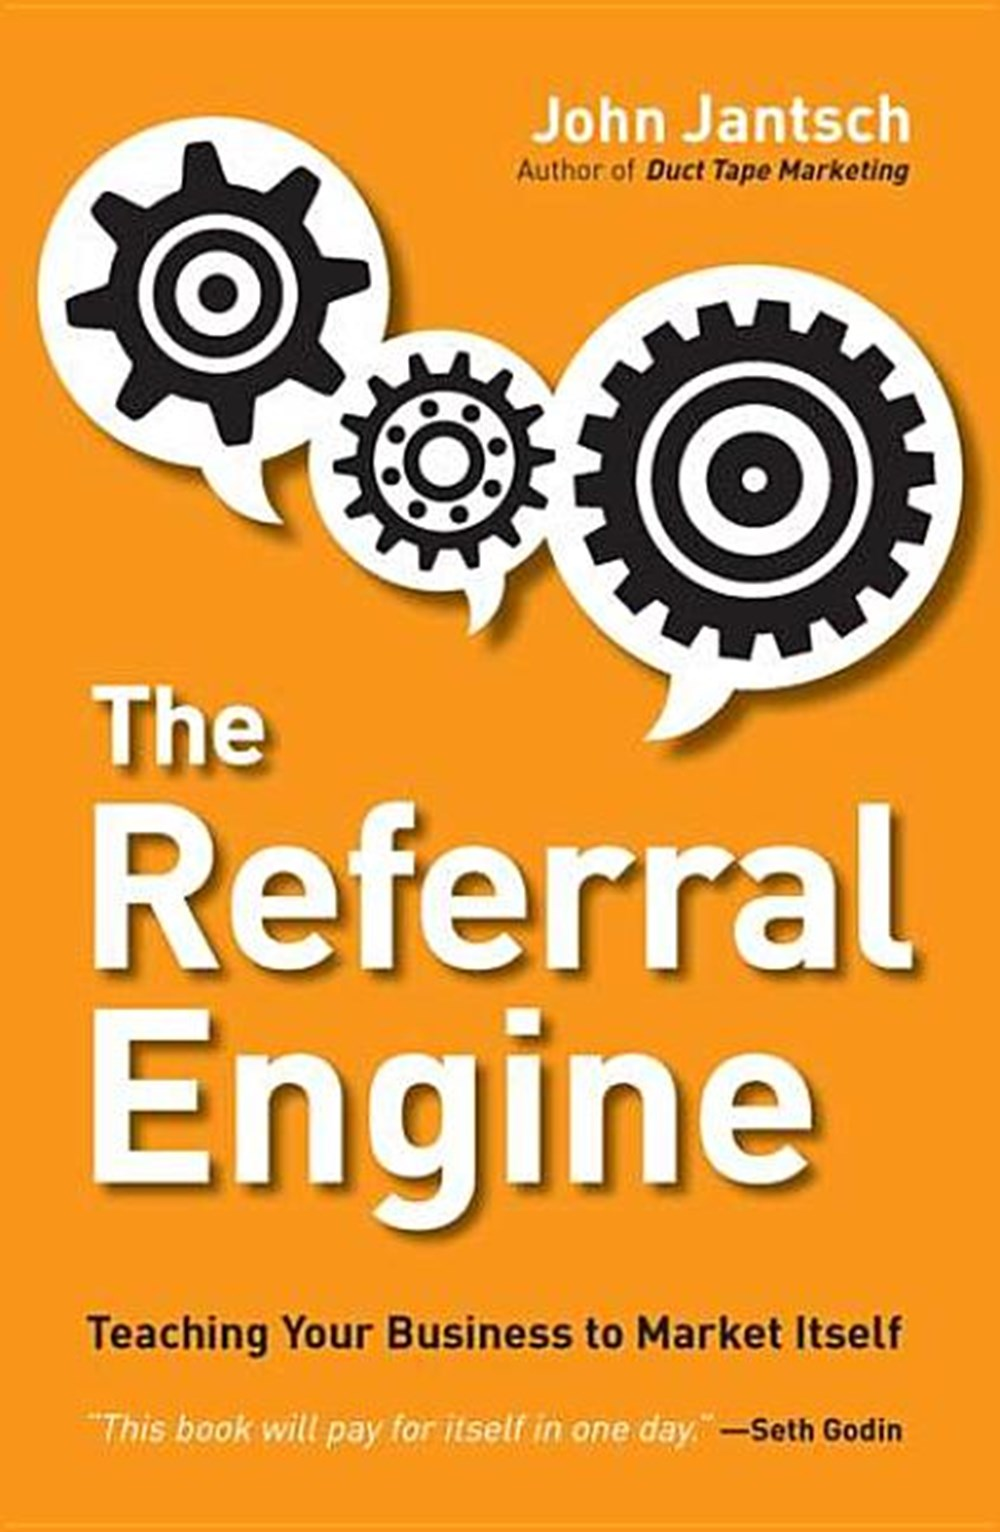 Referral Engine Teaching Your Business to Market Itself